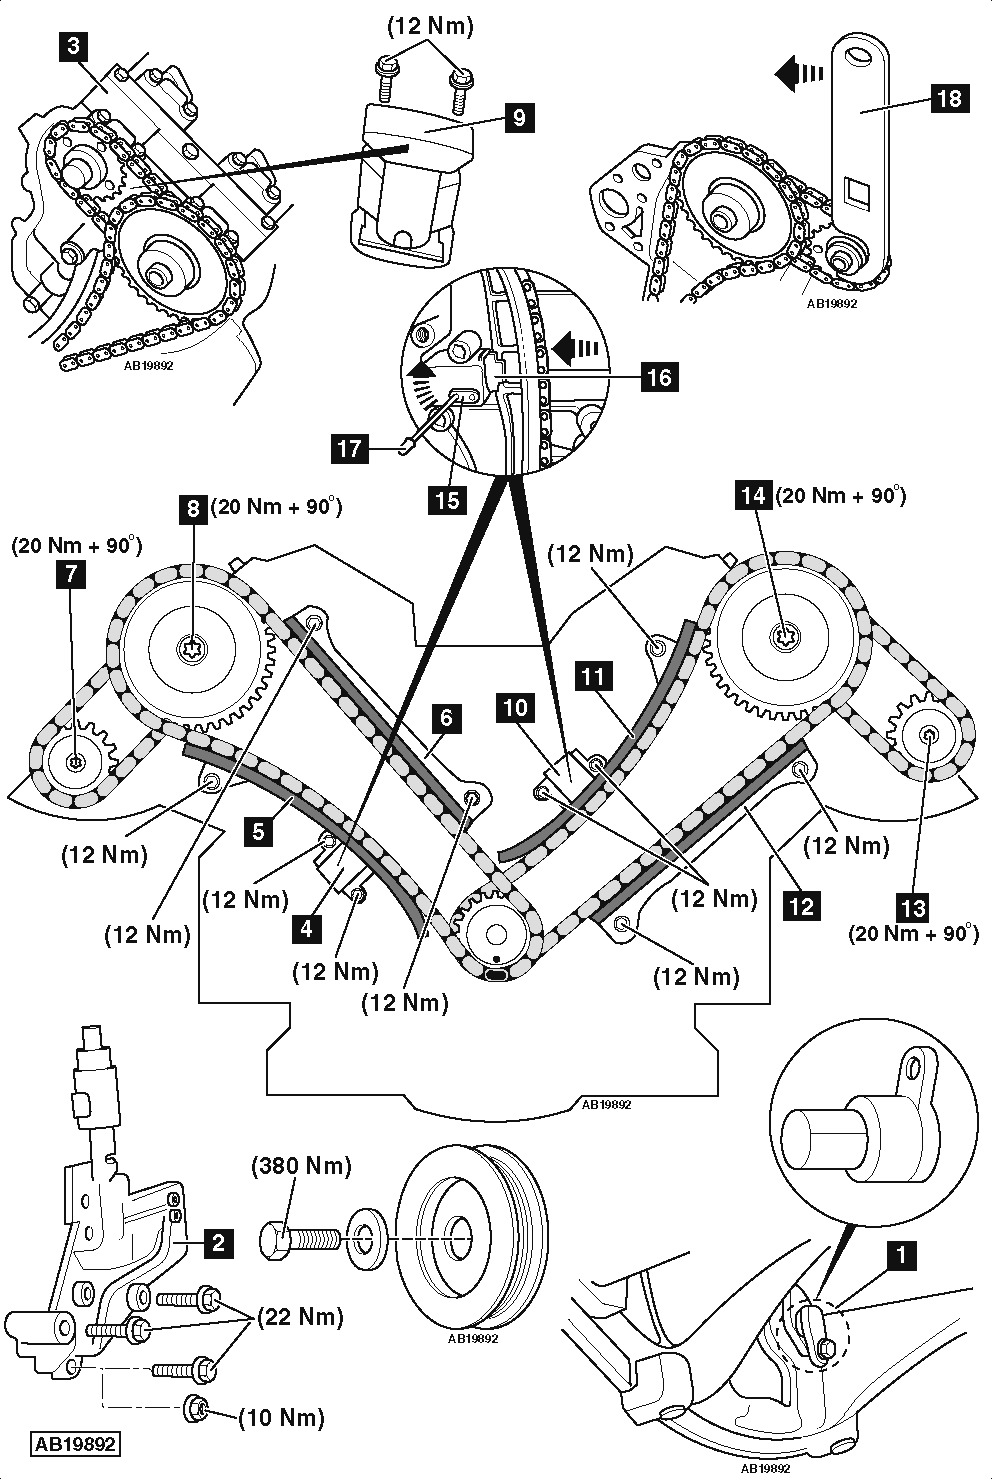 How To Replace Timing Chains On Jaguar Xf 4 2 Sv8 2008 2009 on chrysler 3 8 v6 engine diagram